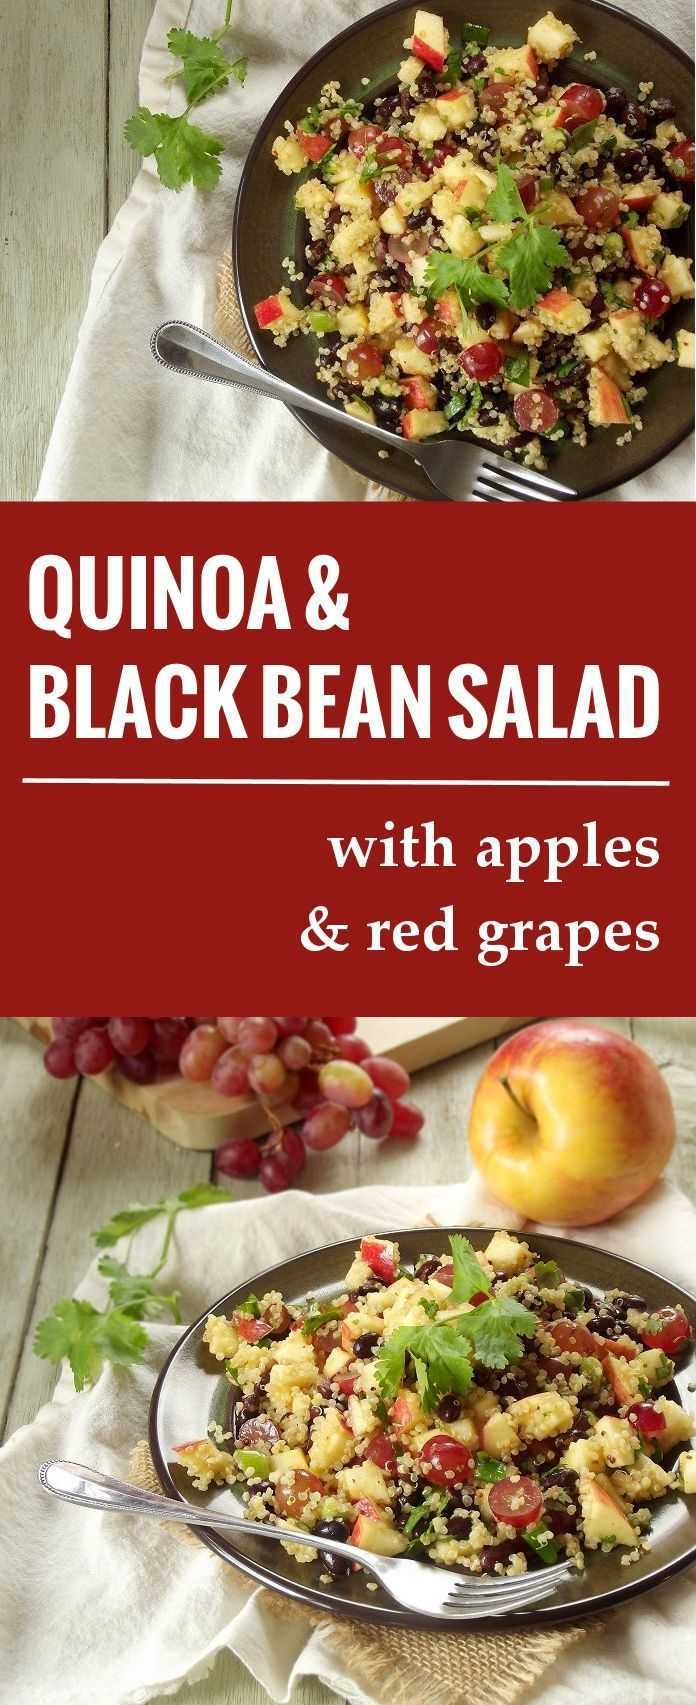 Quinoa Salad with Black Beans, Apples and Red Grapes   Book Review: Broccoli, Love and Dark Chocolate